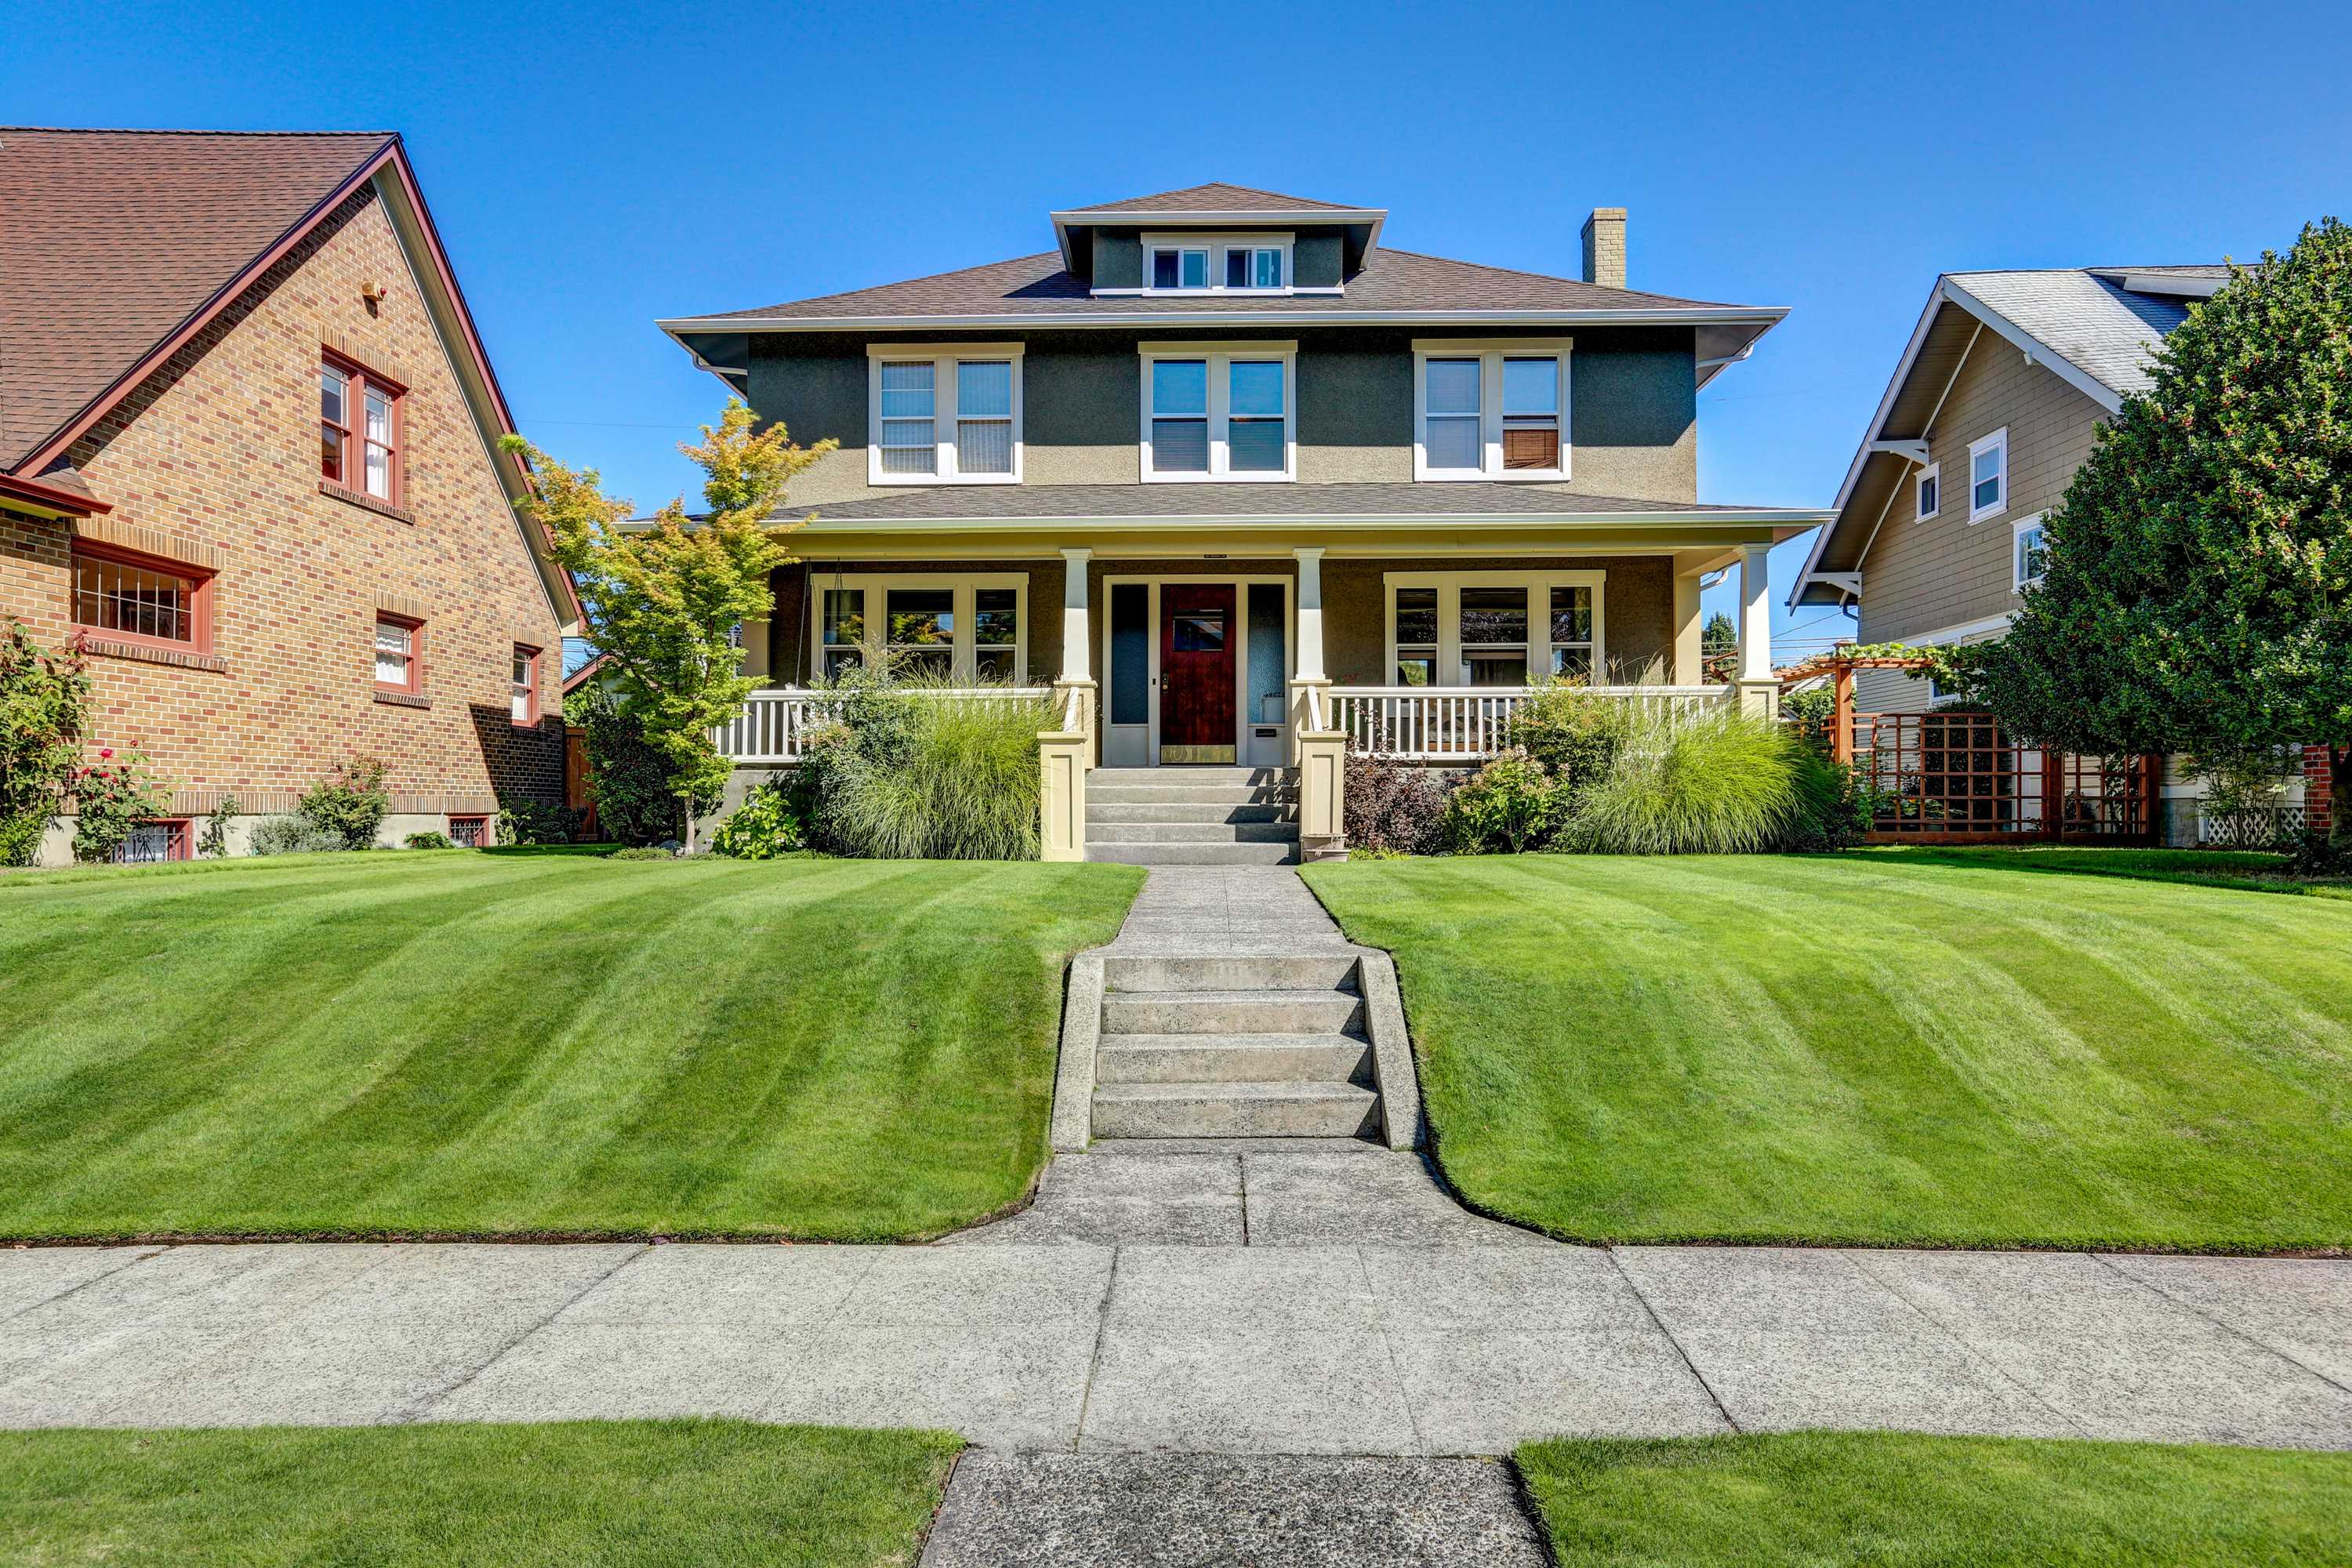 beautiful lawn | lawn care | grass | grass care | yard | beautiful yard | lawn tips | lawn tricks | tips and tricks for lawns